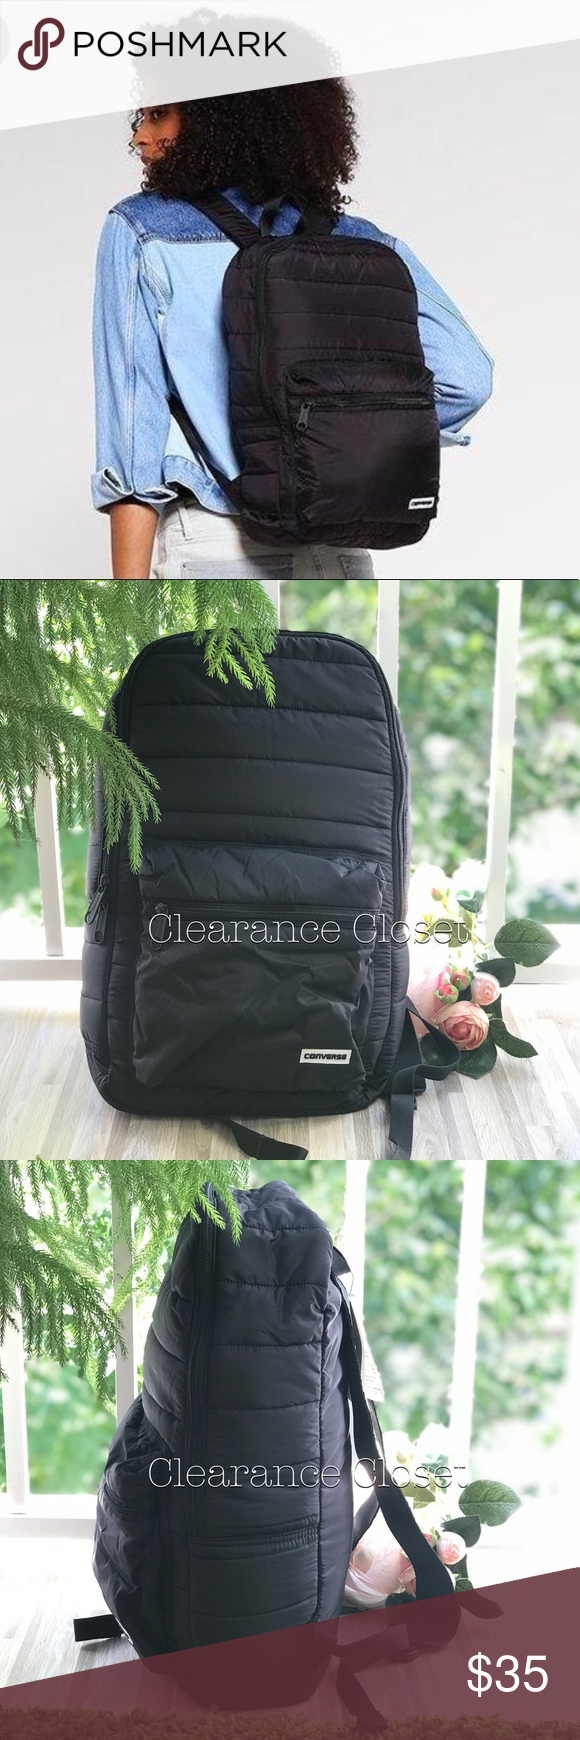 58228be4ada7 NWT Converse Packable Backpack Black Unisex Brand new with tag